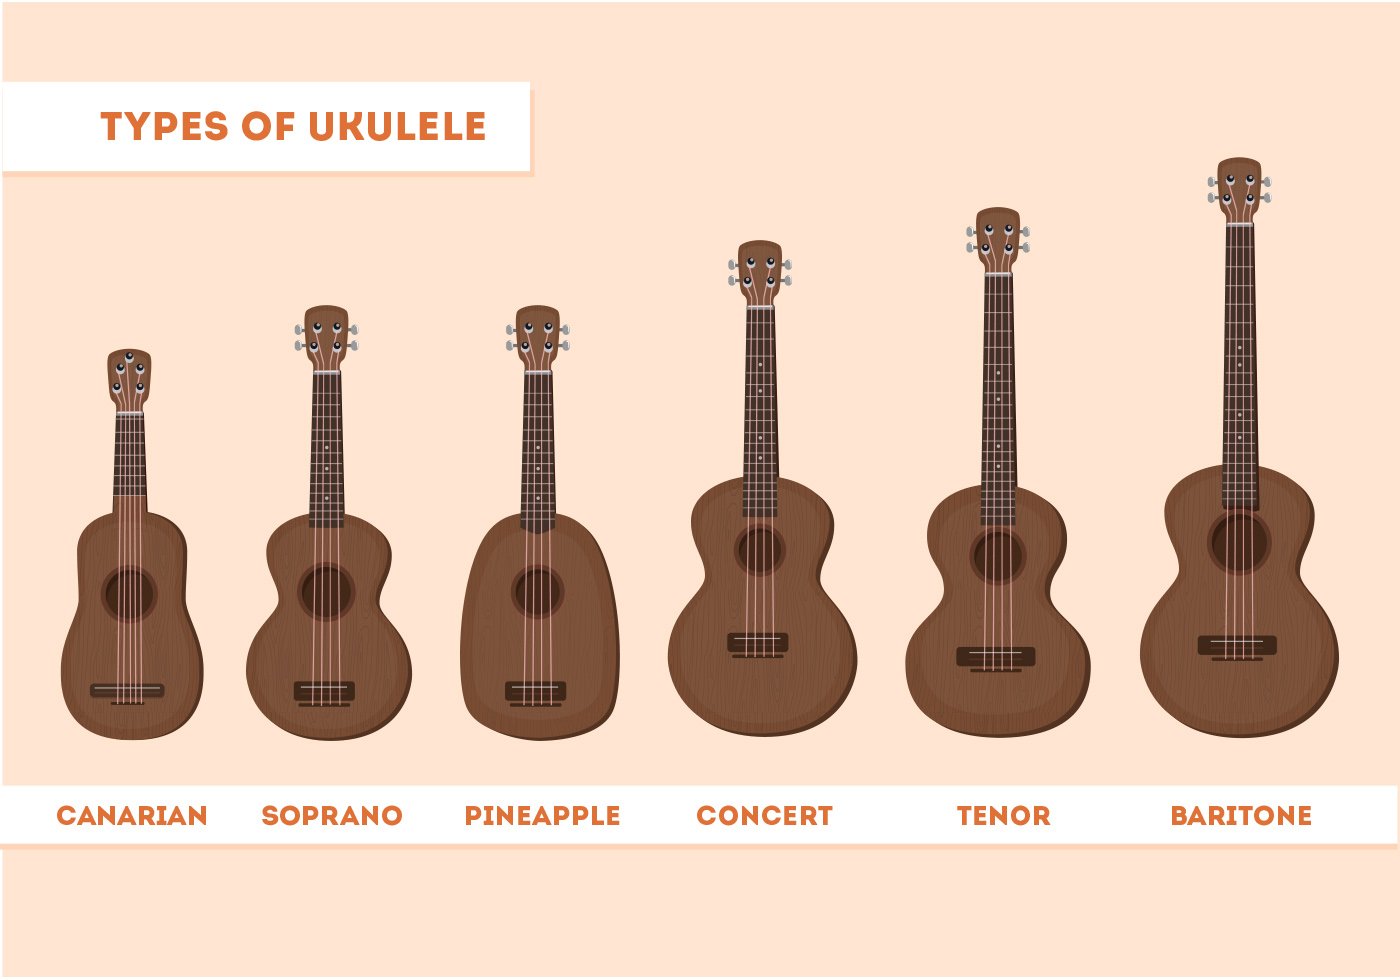 Cute Patterns For Wallpapers Ukulele Free Vector Art 4329 Free Downloads